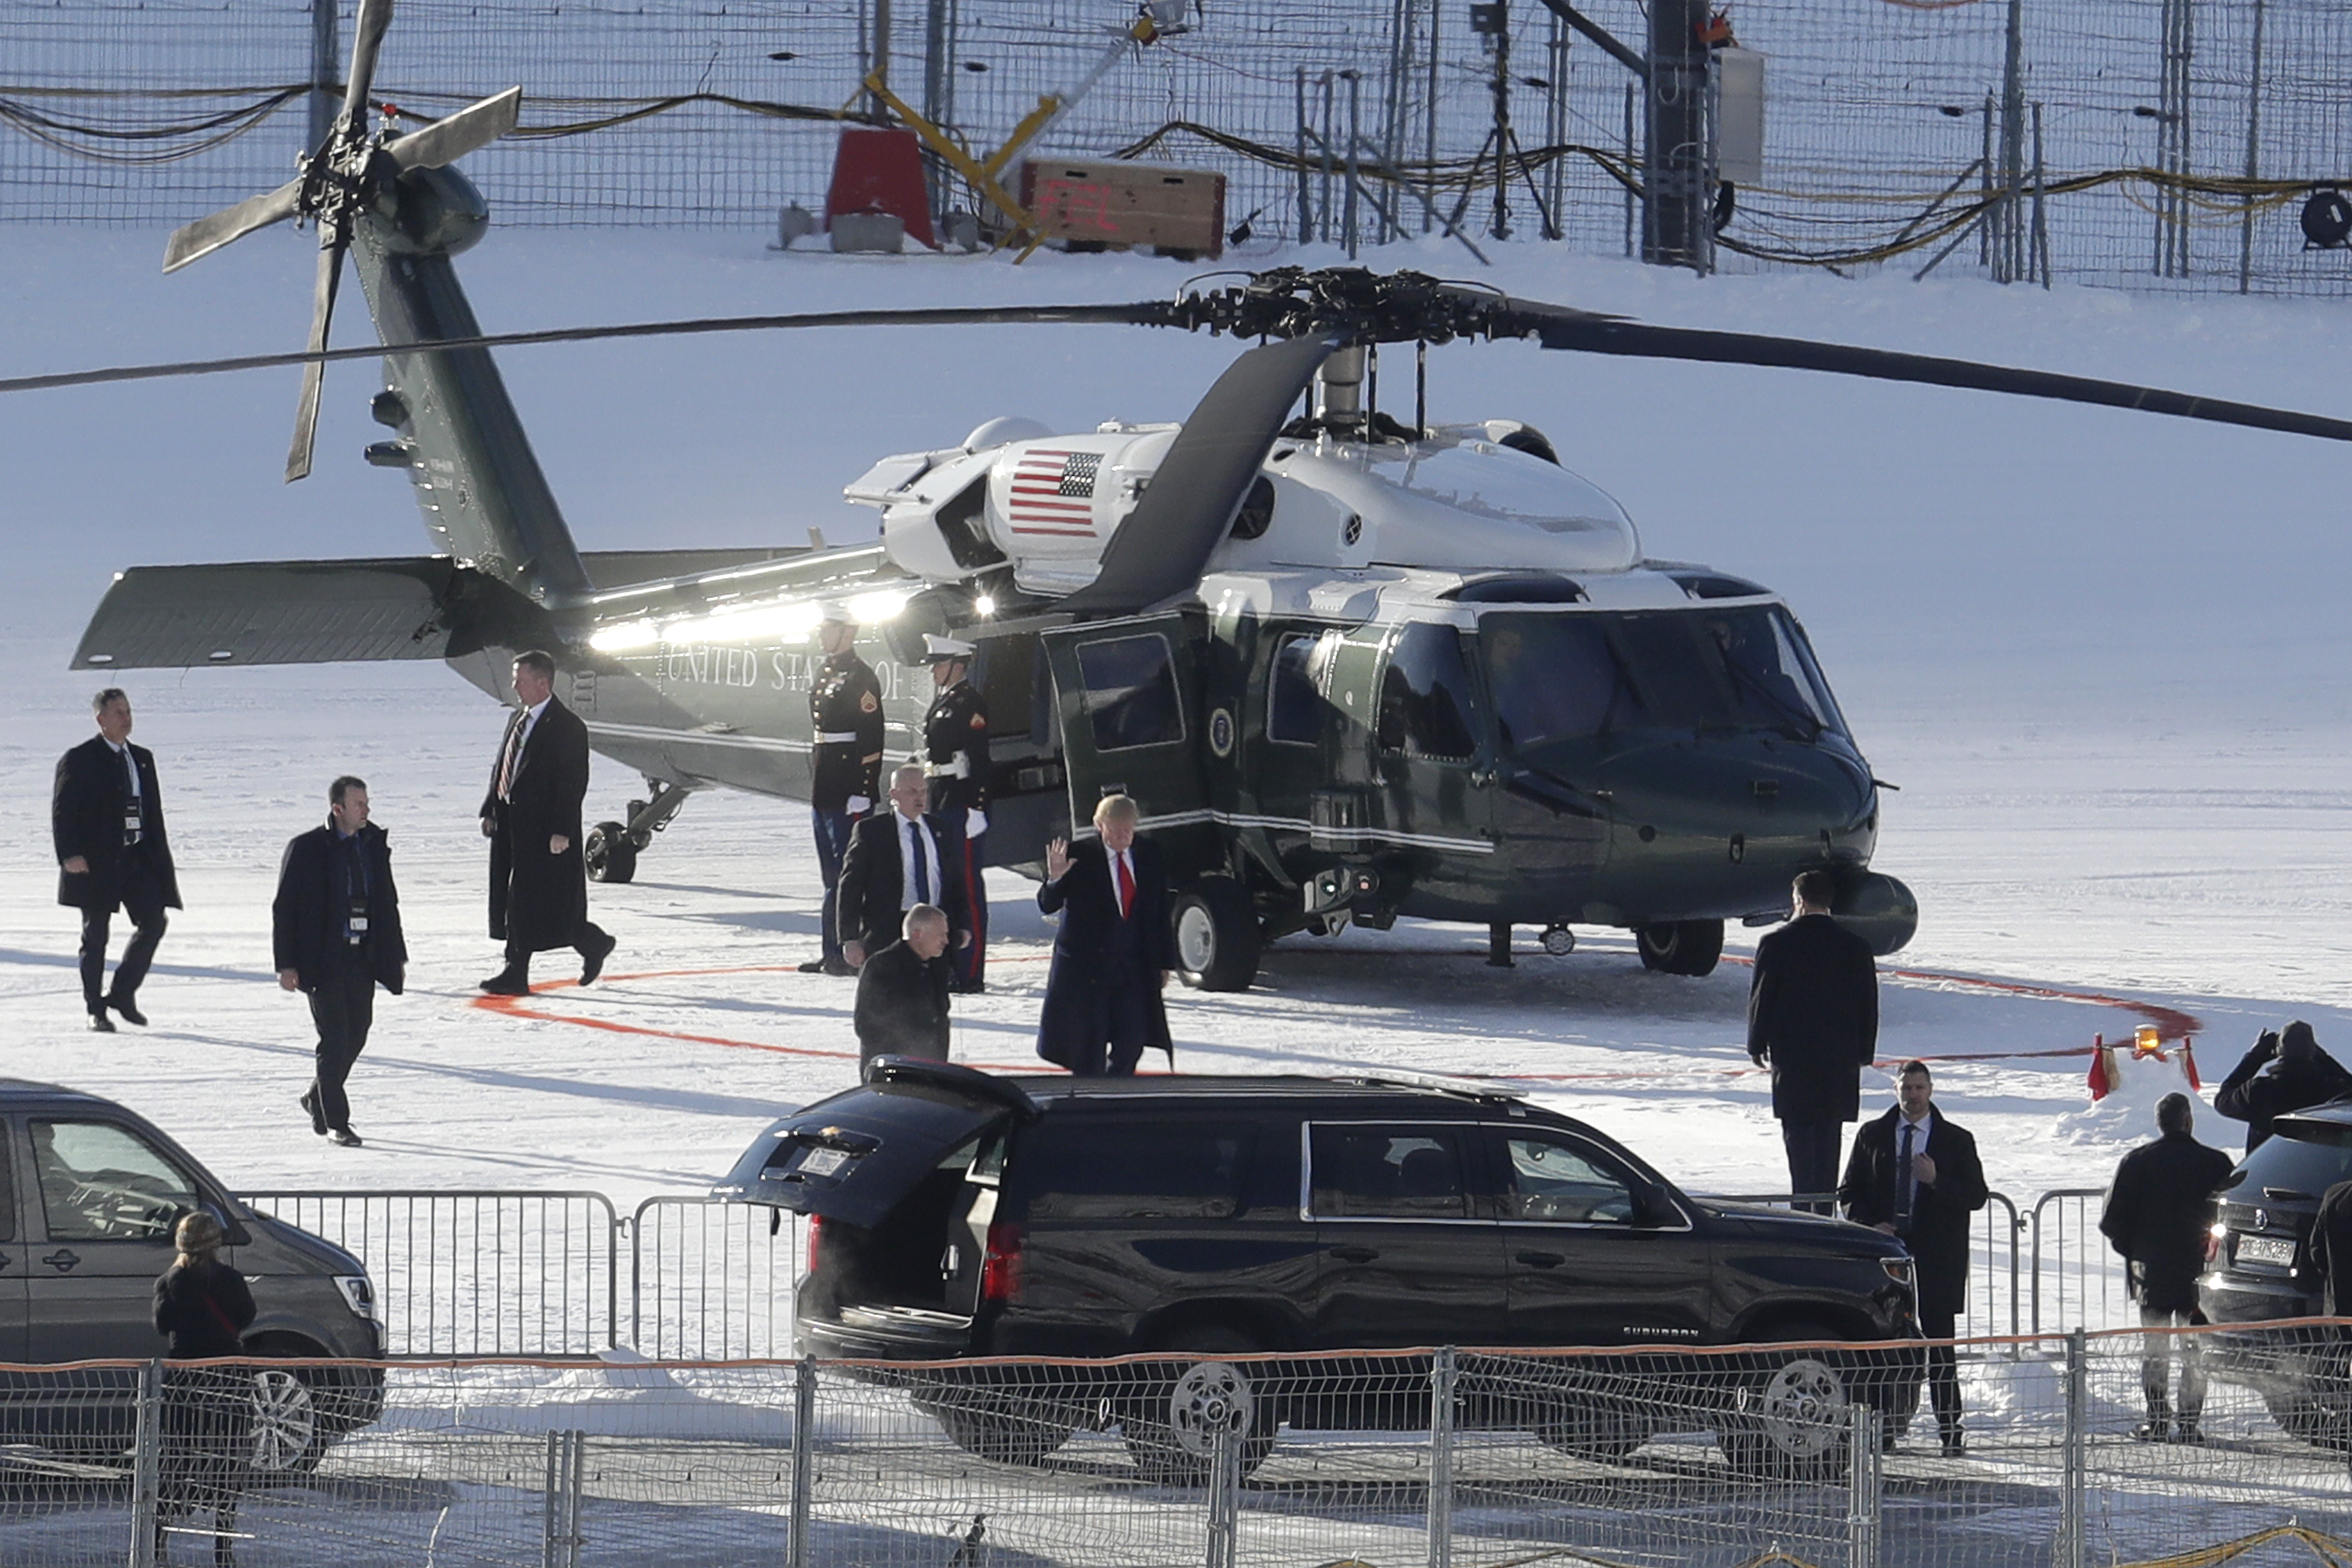 US President Donald Trump, center with red tie, waves as he arrives in Davos, Switzerland on Marine One, Tuesday, Jan. 21, 2020. President Trump arrived in Switzerland on Tuesday to start a two-day visit to the World Economic Forum. (AP Photo/Michael Probst)